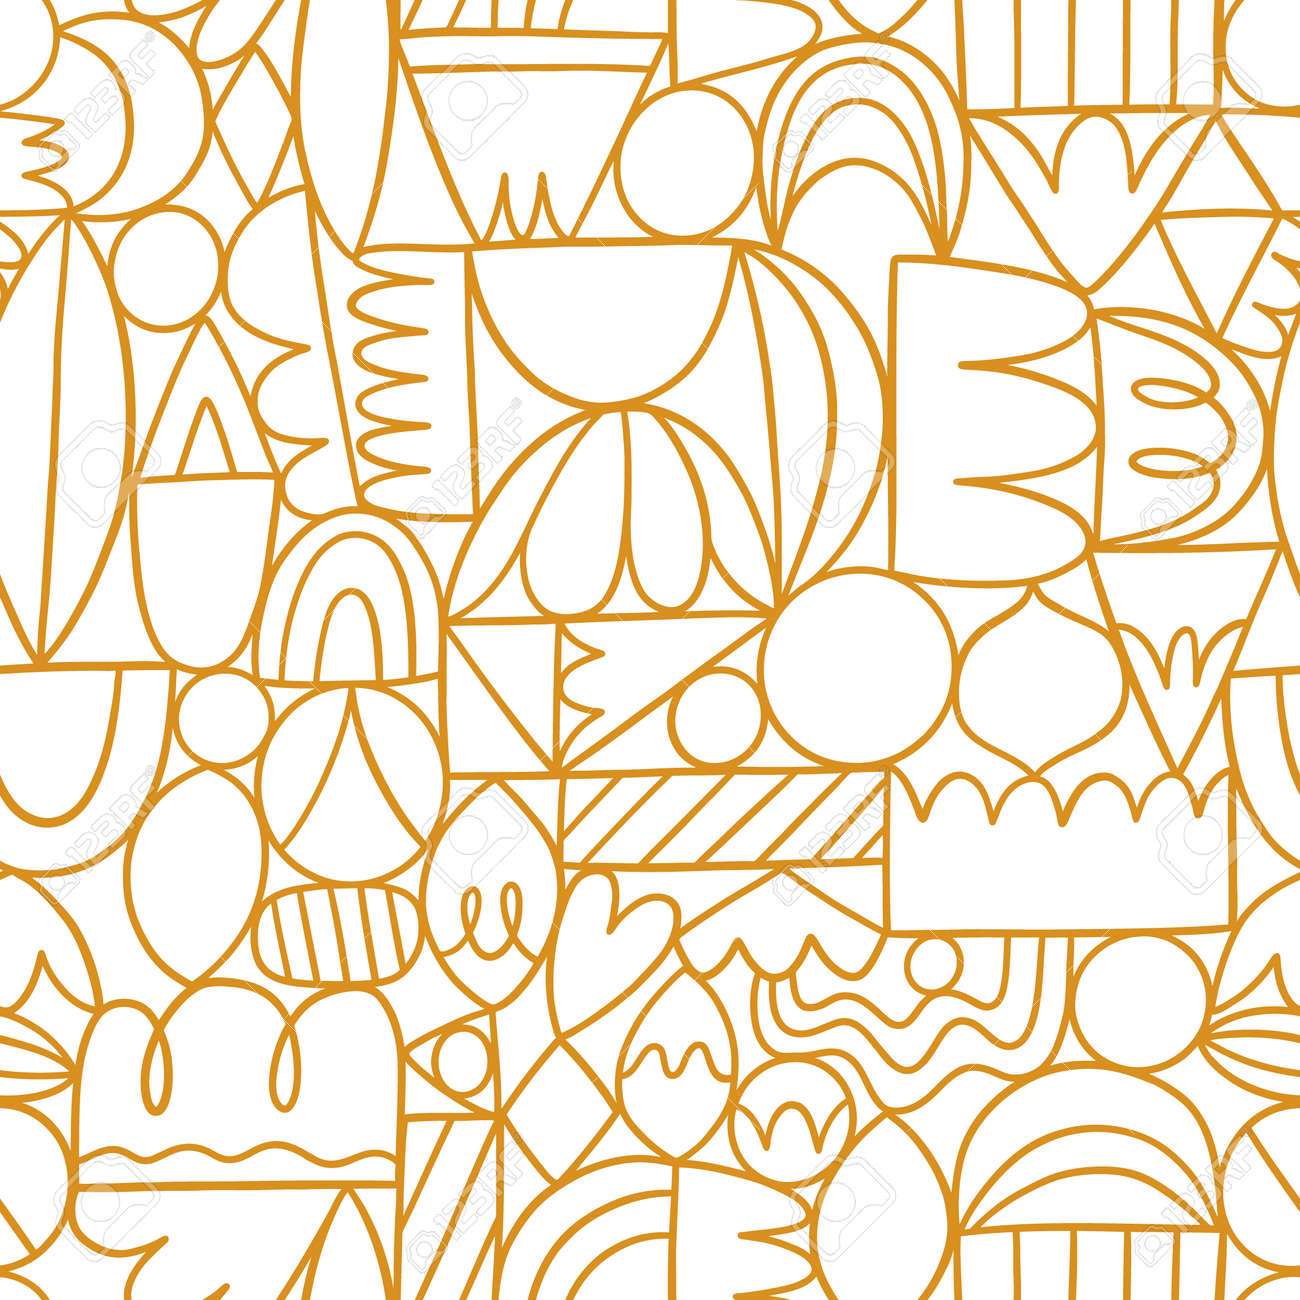 Creative thinking, good thinking, golden outline abstract shapes, vector seamless pattern - 160686512